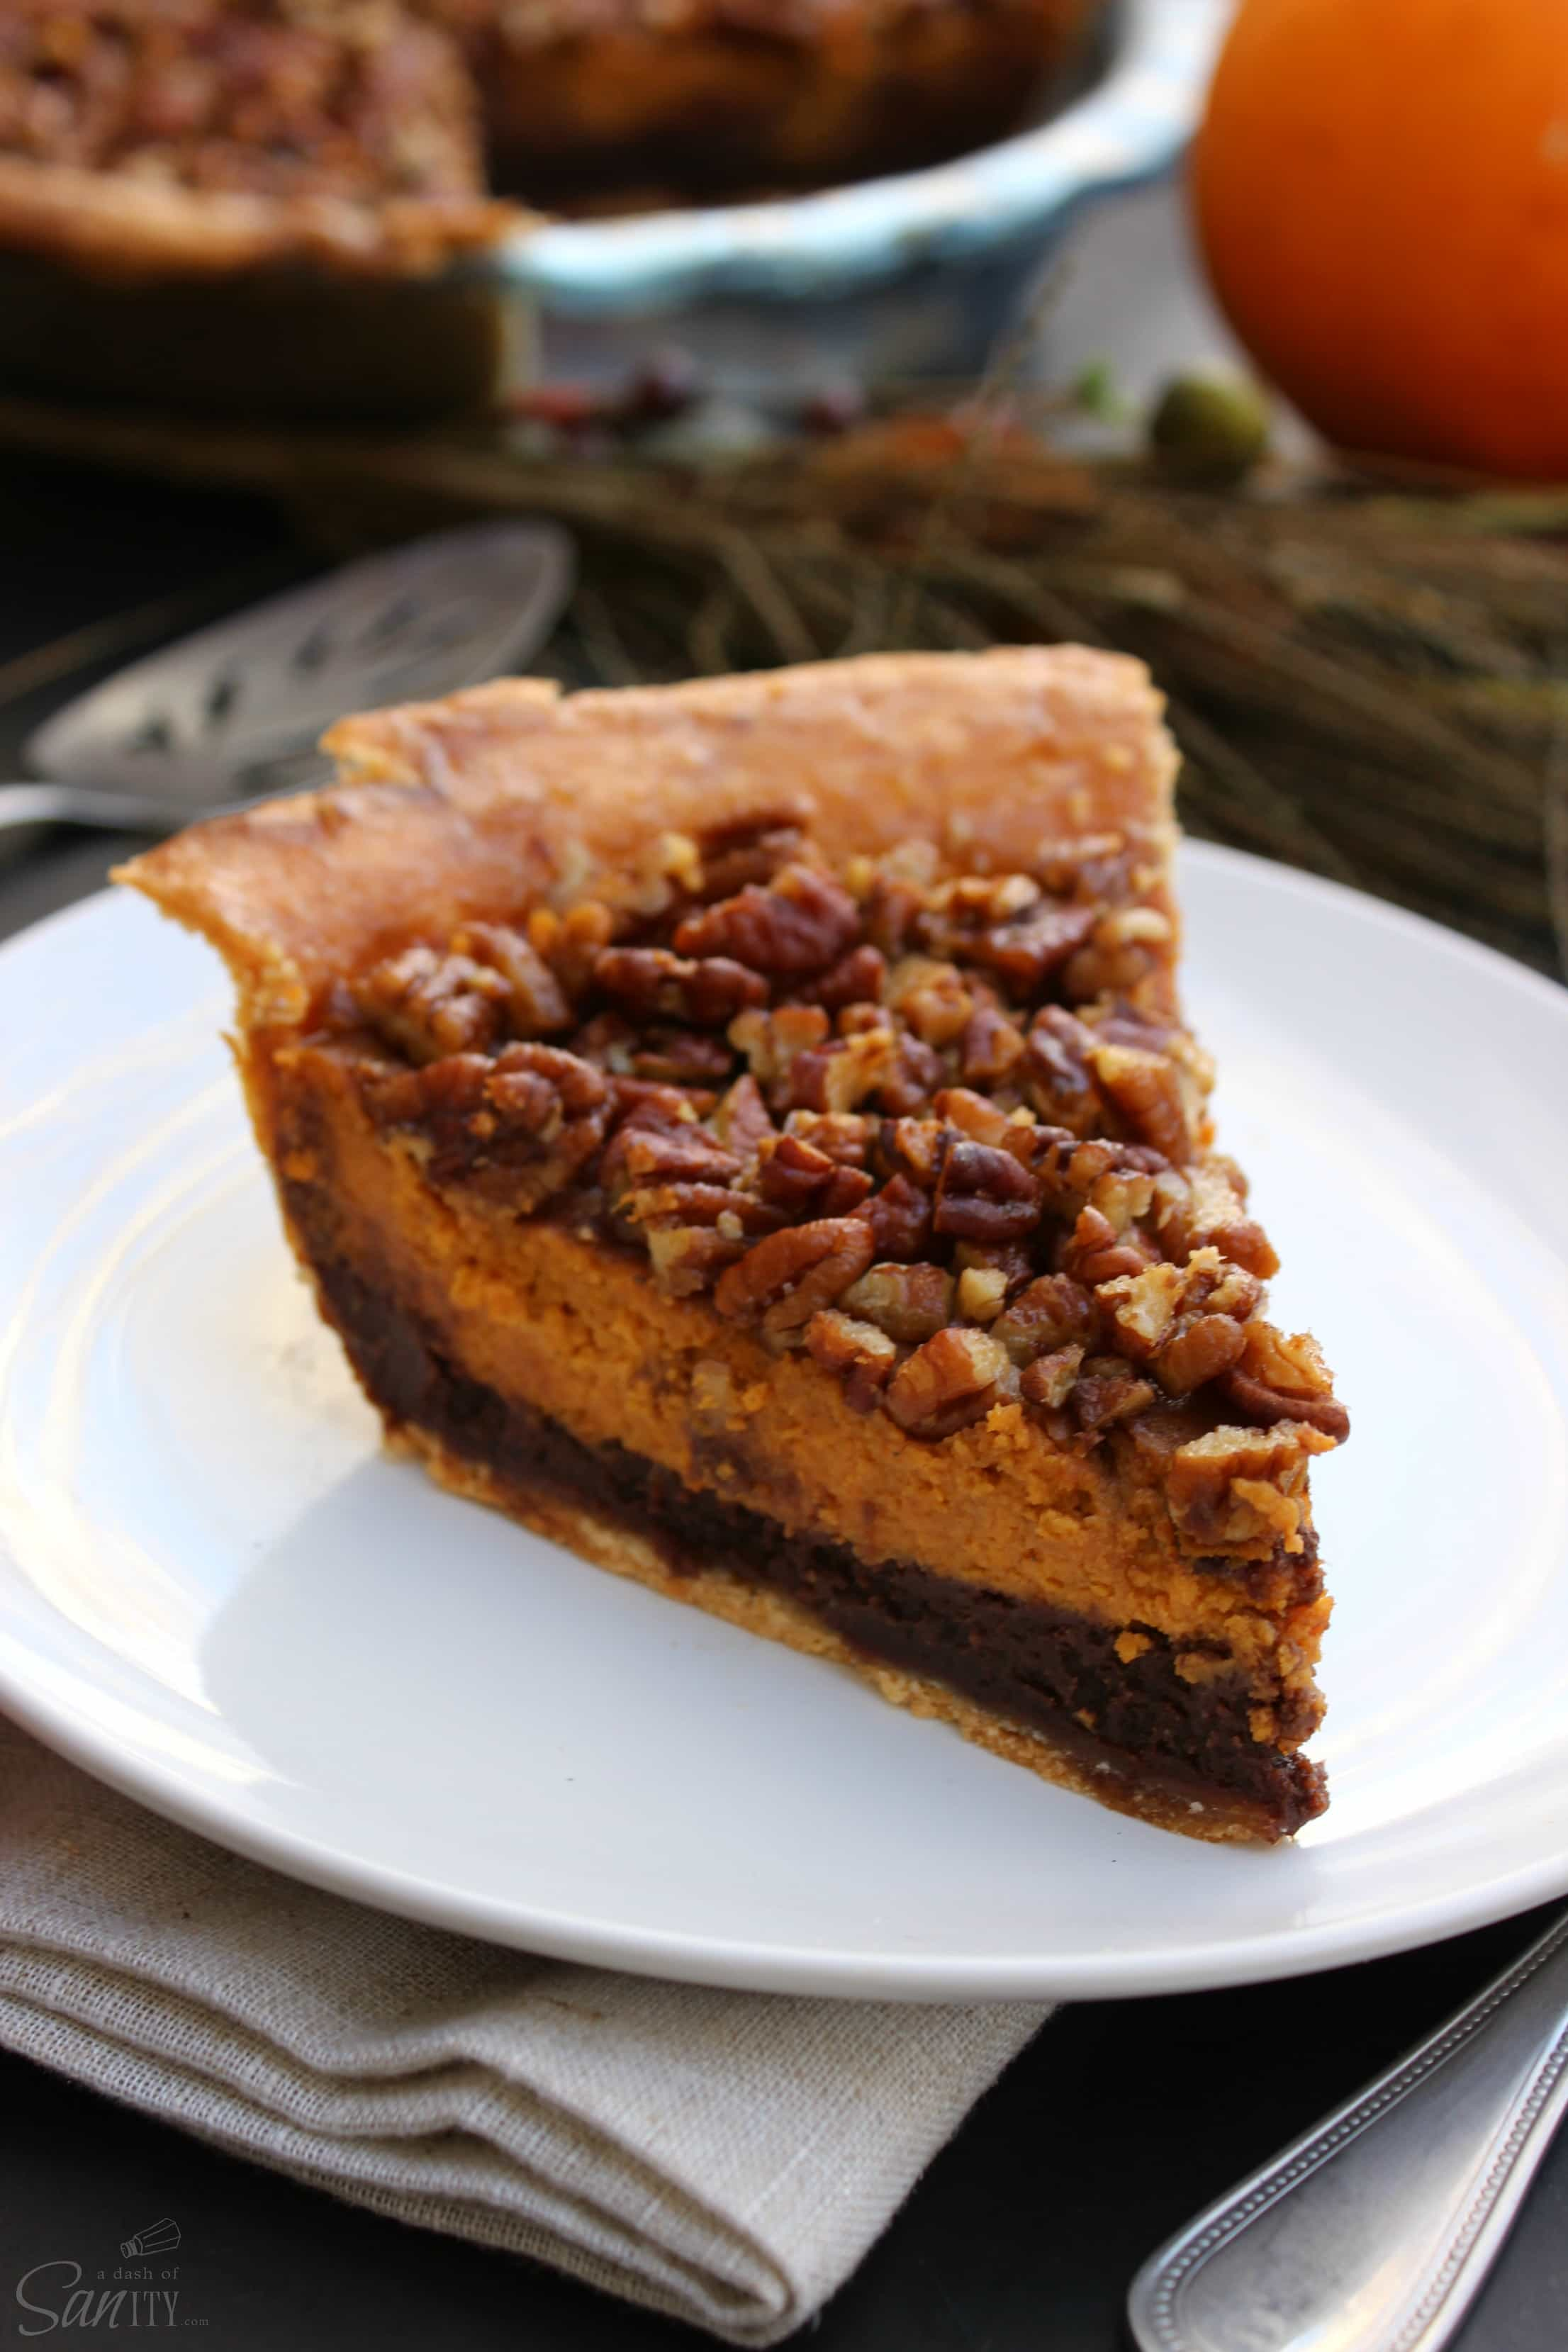 Chocolate Pecan Pumpkin Pie & Holiday Inspired Pies Worth Craving